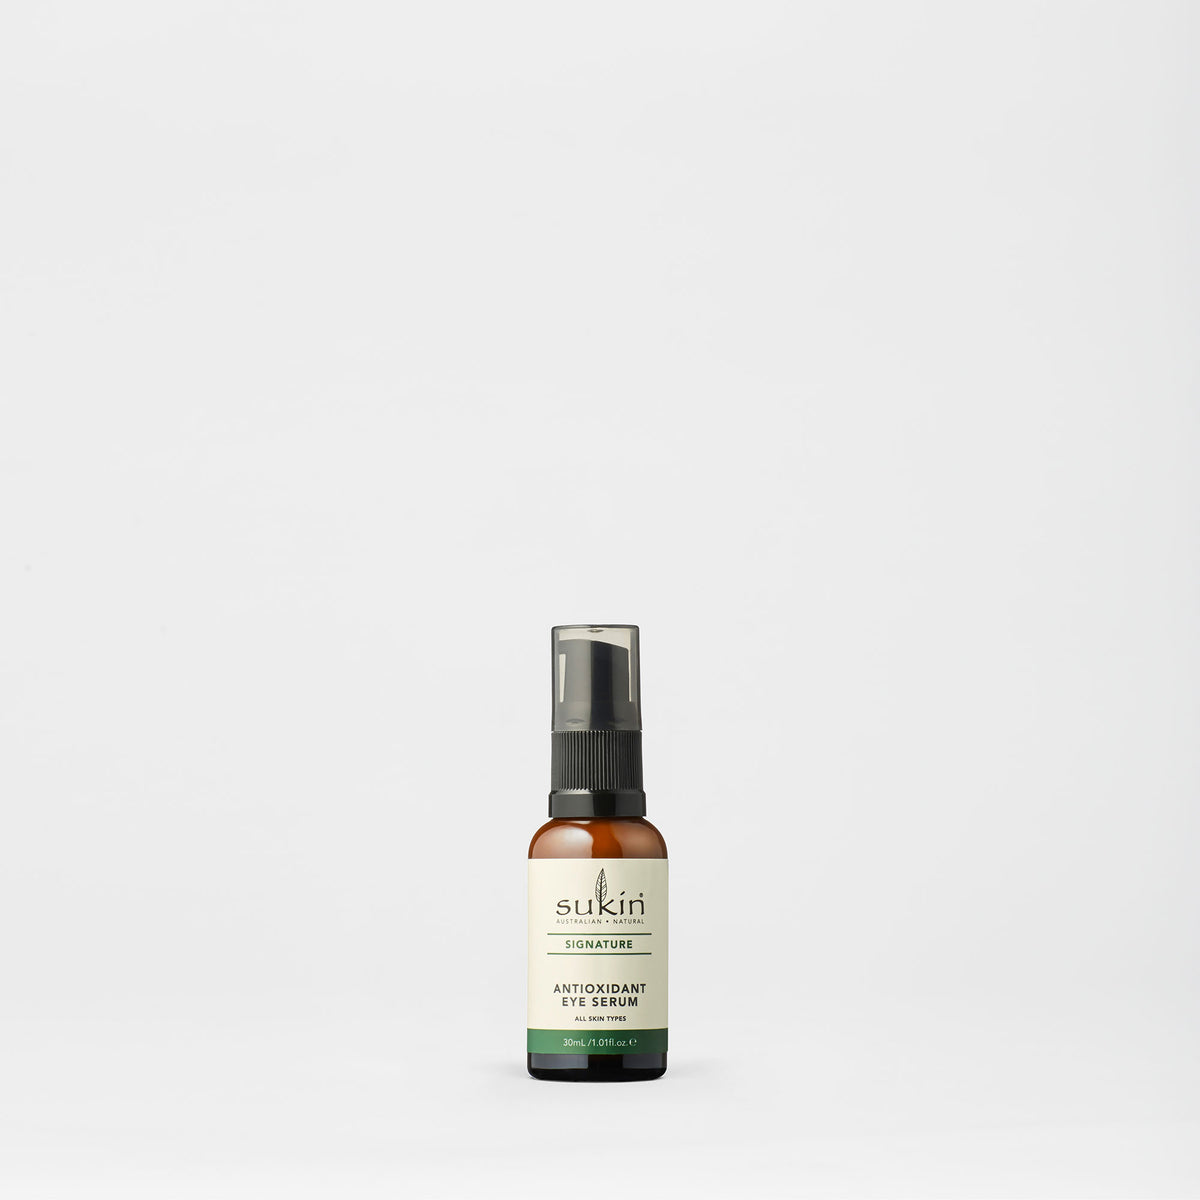 Sukin Natural Antioxidant Eye Serum | Signature 30ml